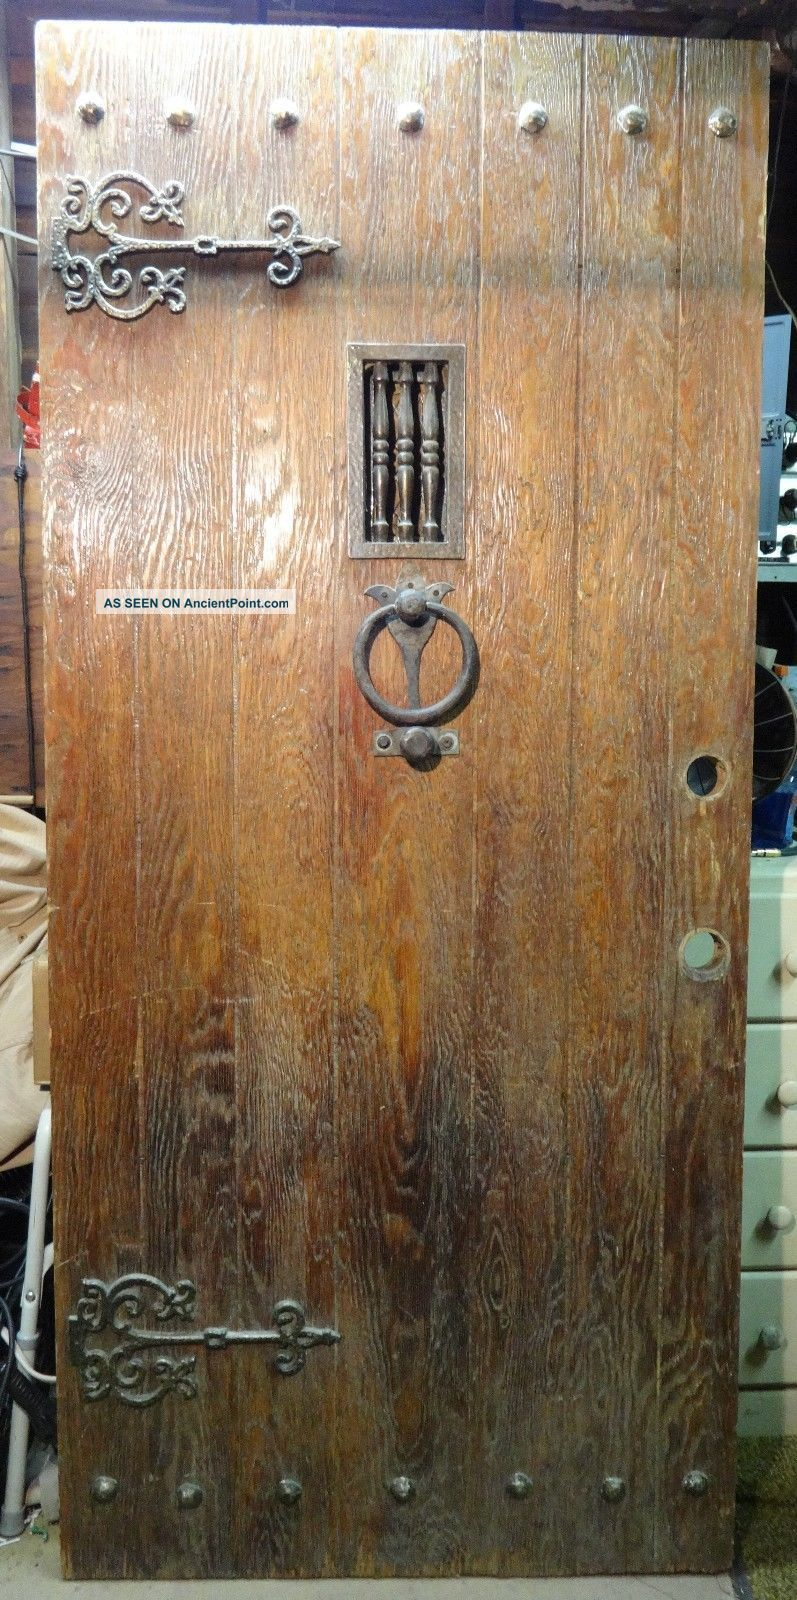 Antique 1800 u0027 S Rustic Door With Brass Hand - Forged Hardware (speakeasy Doors photo & Antique 1800 u0027 S Rustic Door With Brass Hand - Forged Hardware ...